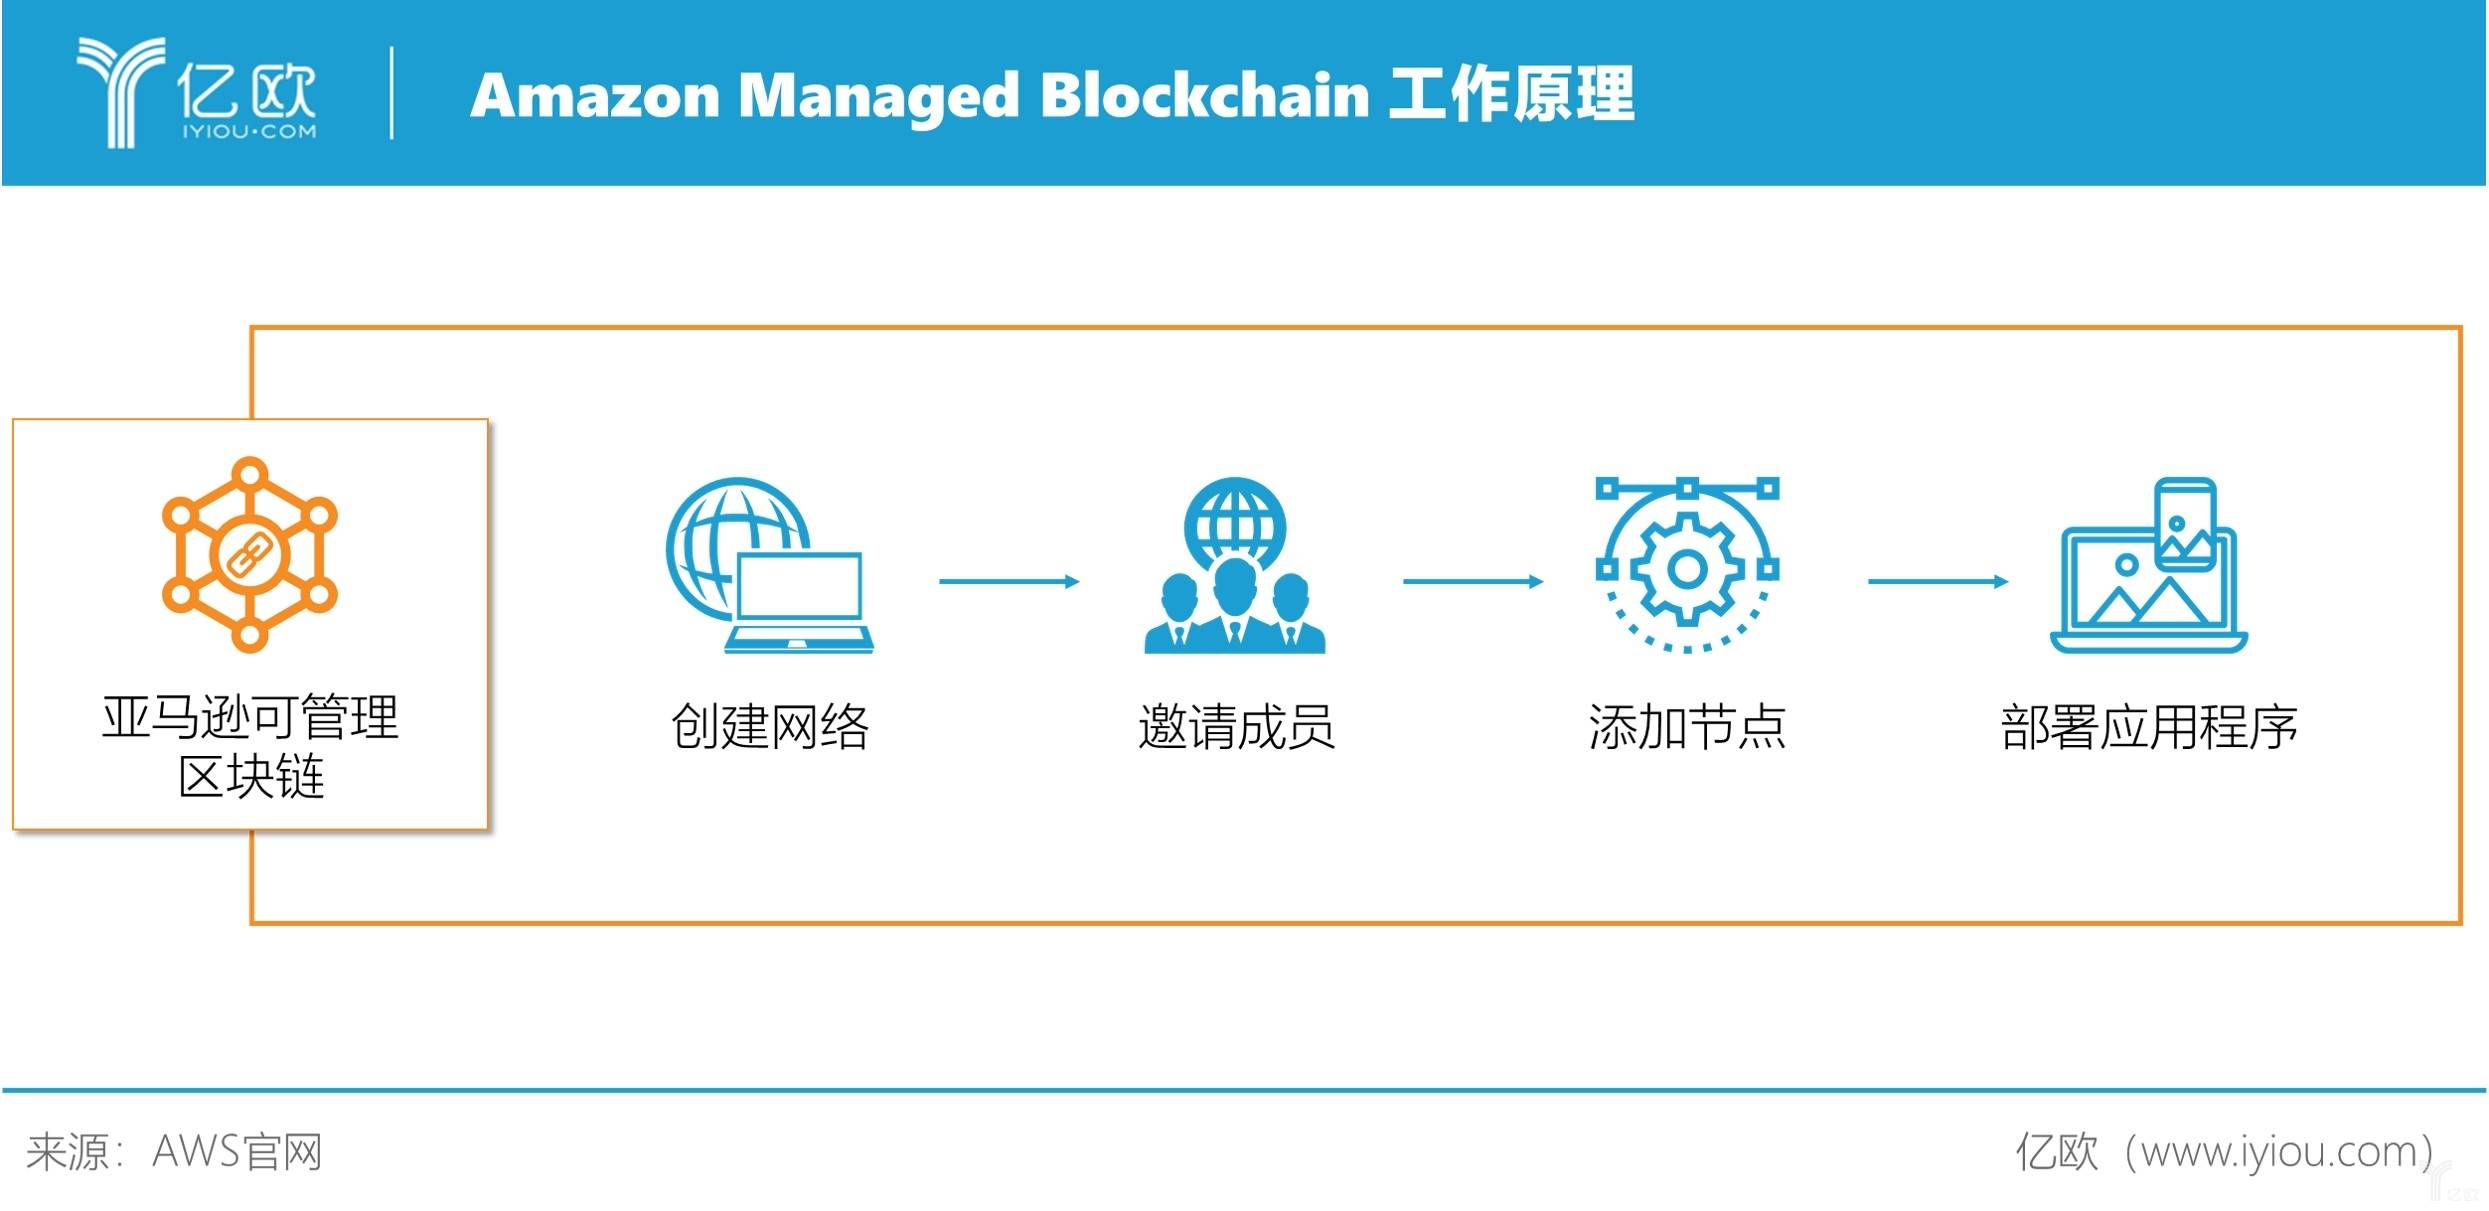 亿欧智库:Amazon Managed Blockchain 工作原理